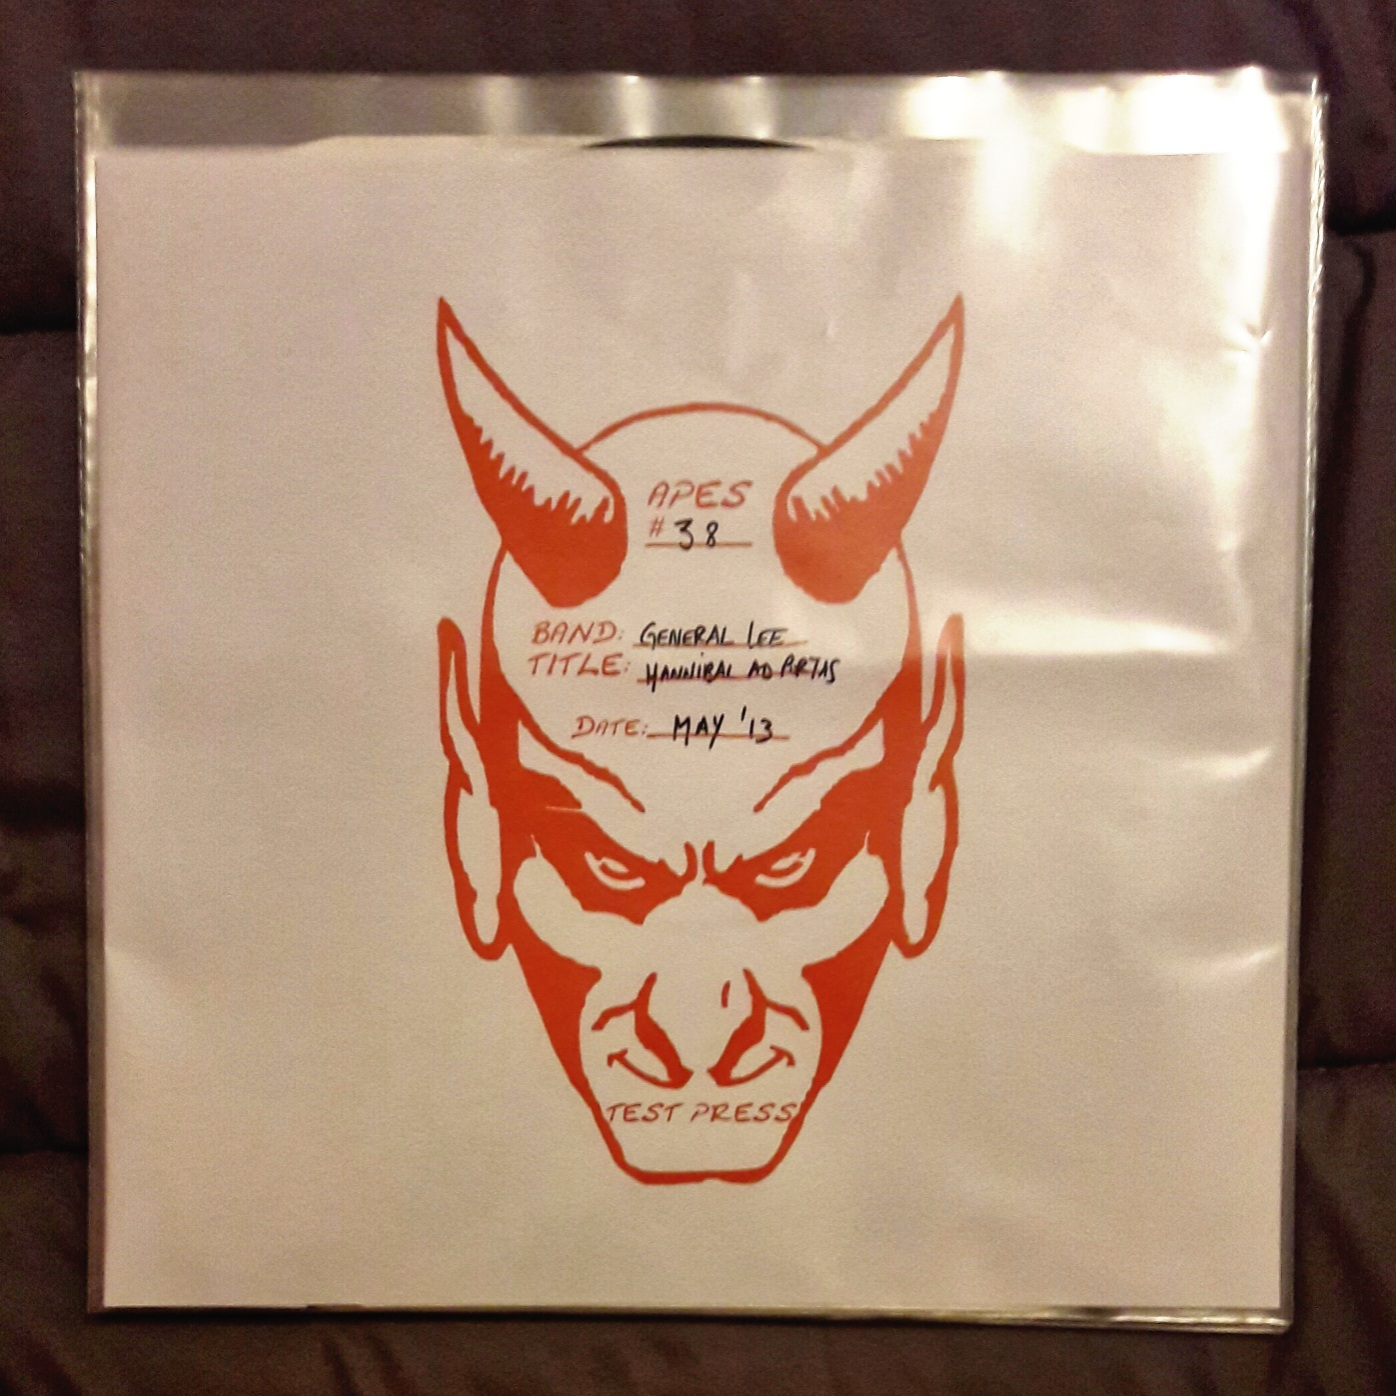 [TEST PRESS] GENERAL LEE Hannibal ad portas